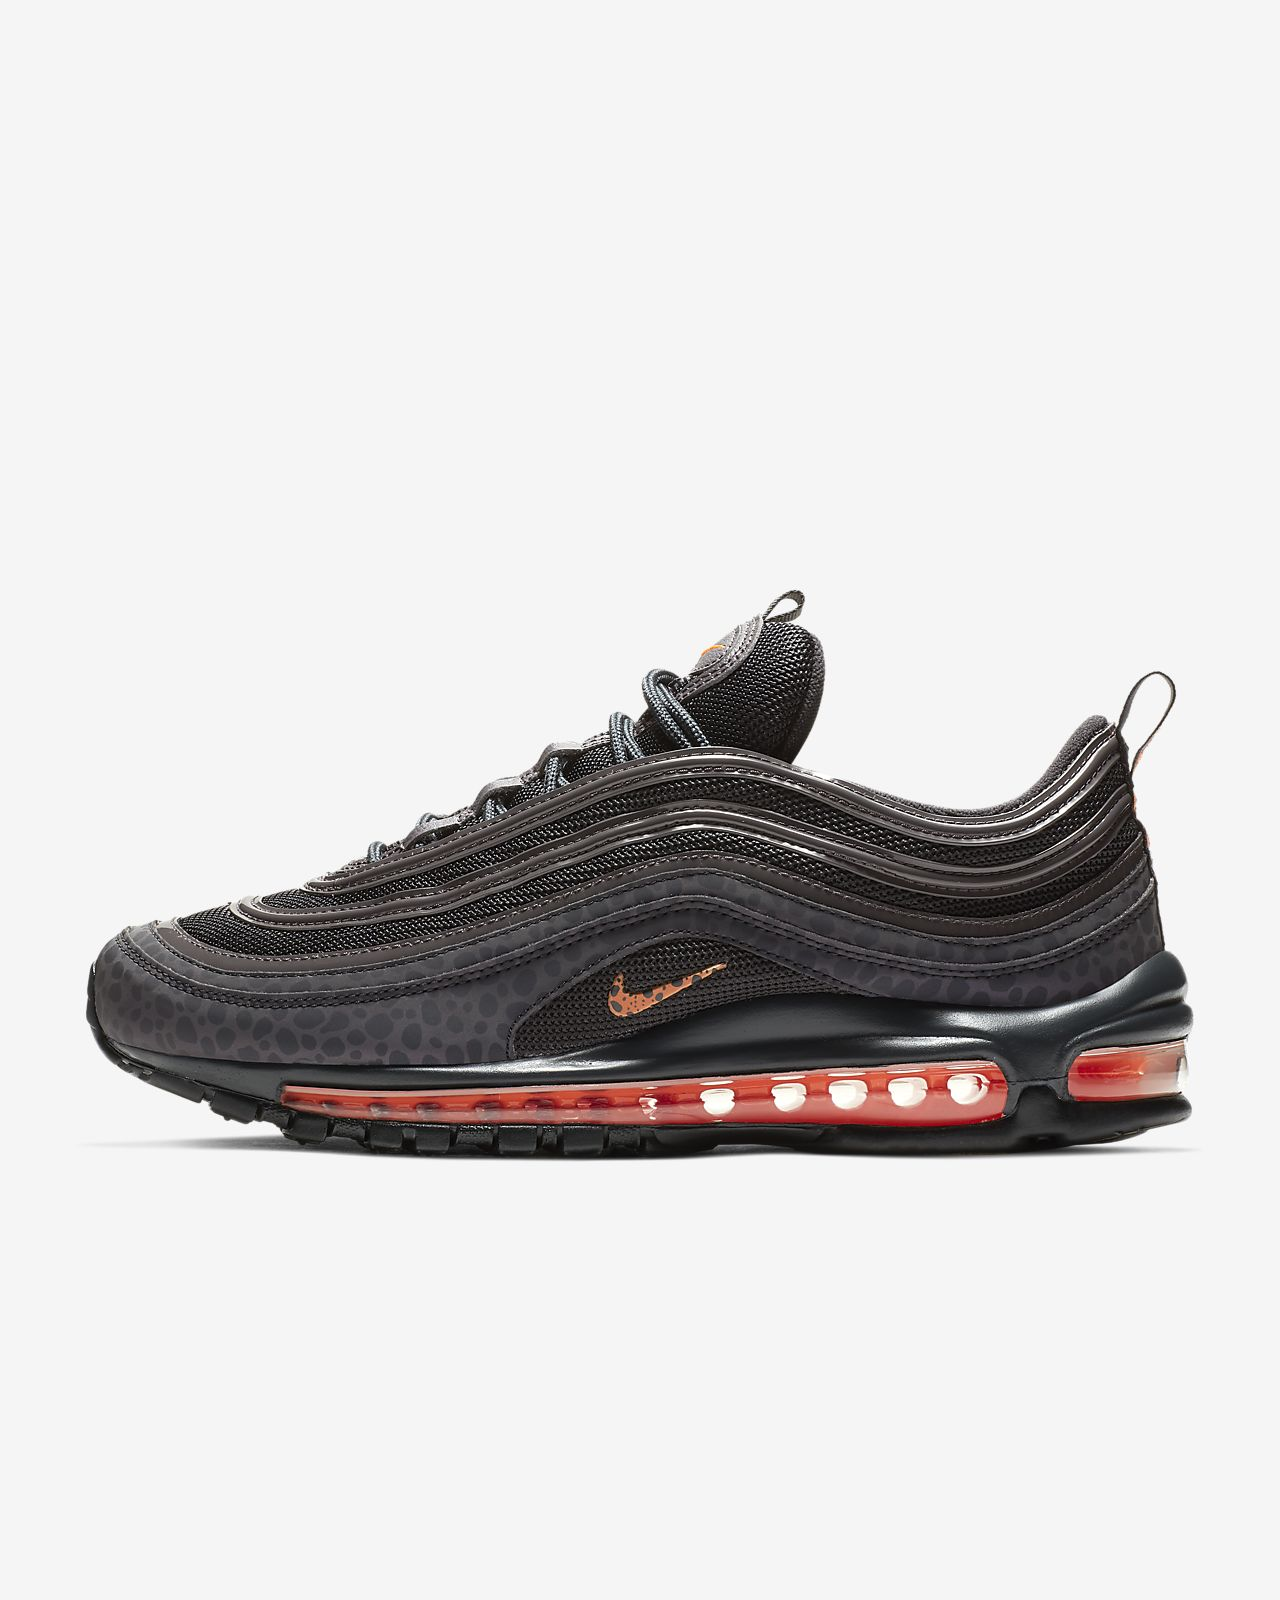 half off d2c99 bdc16 ... Nike Air Max 97 SE Reflective Herrenschuh